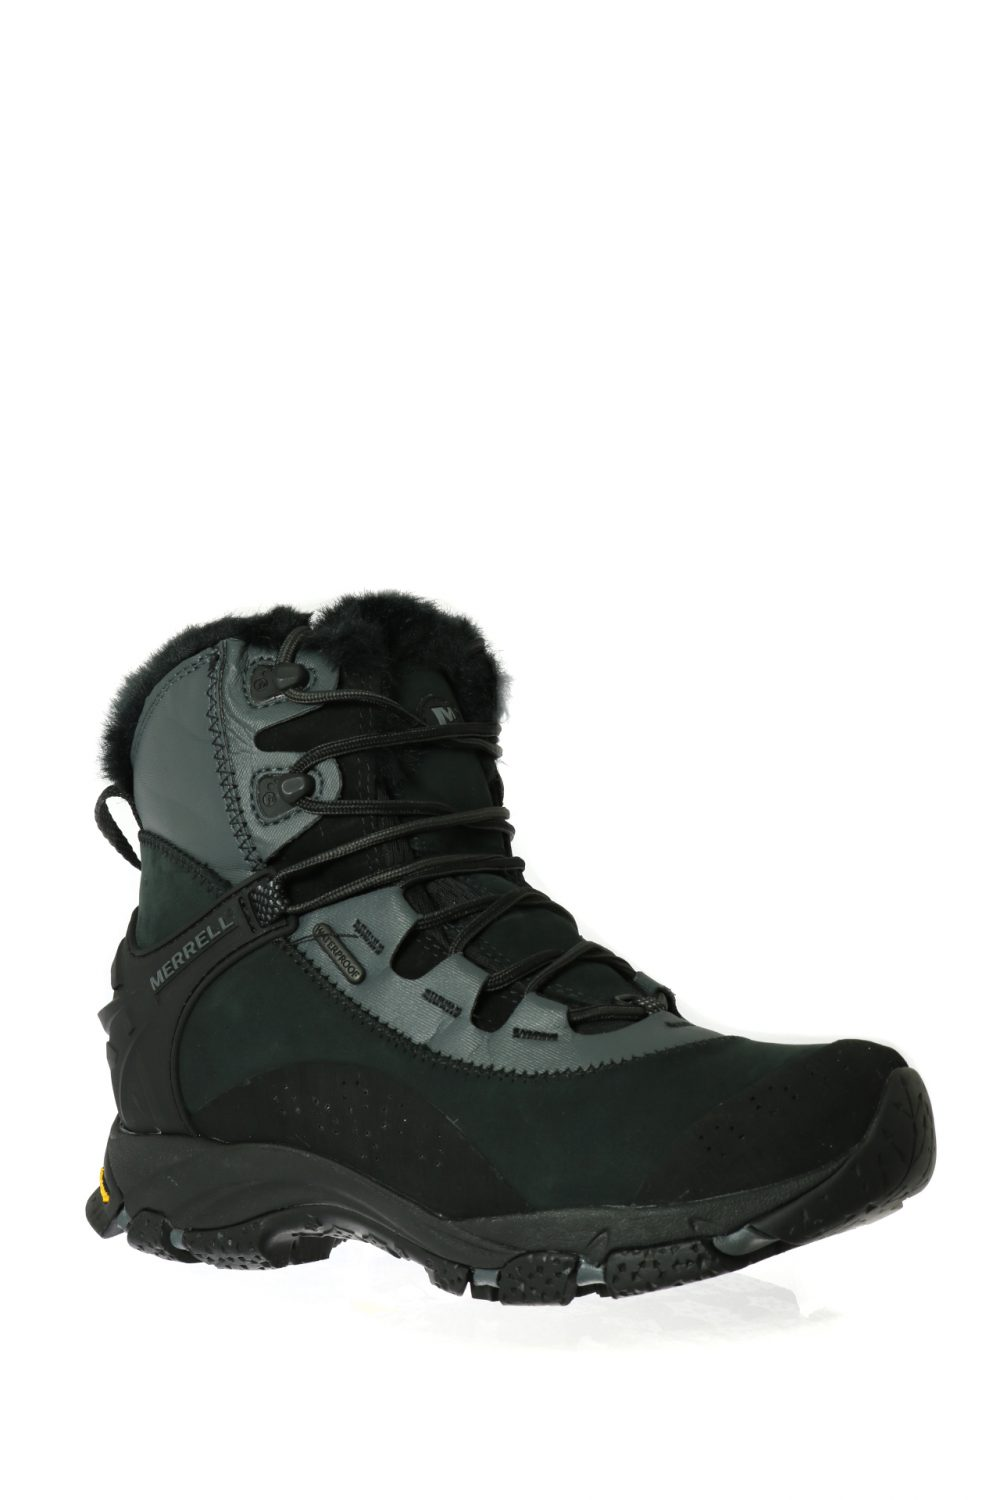 Merrell THERMO ARC II 8